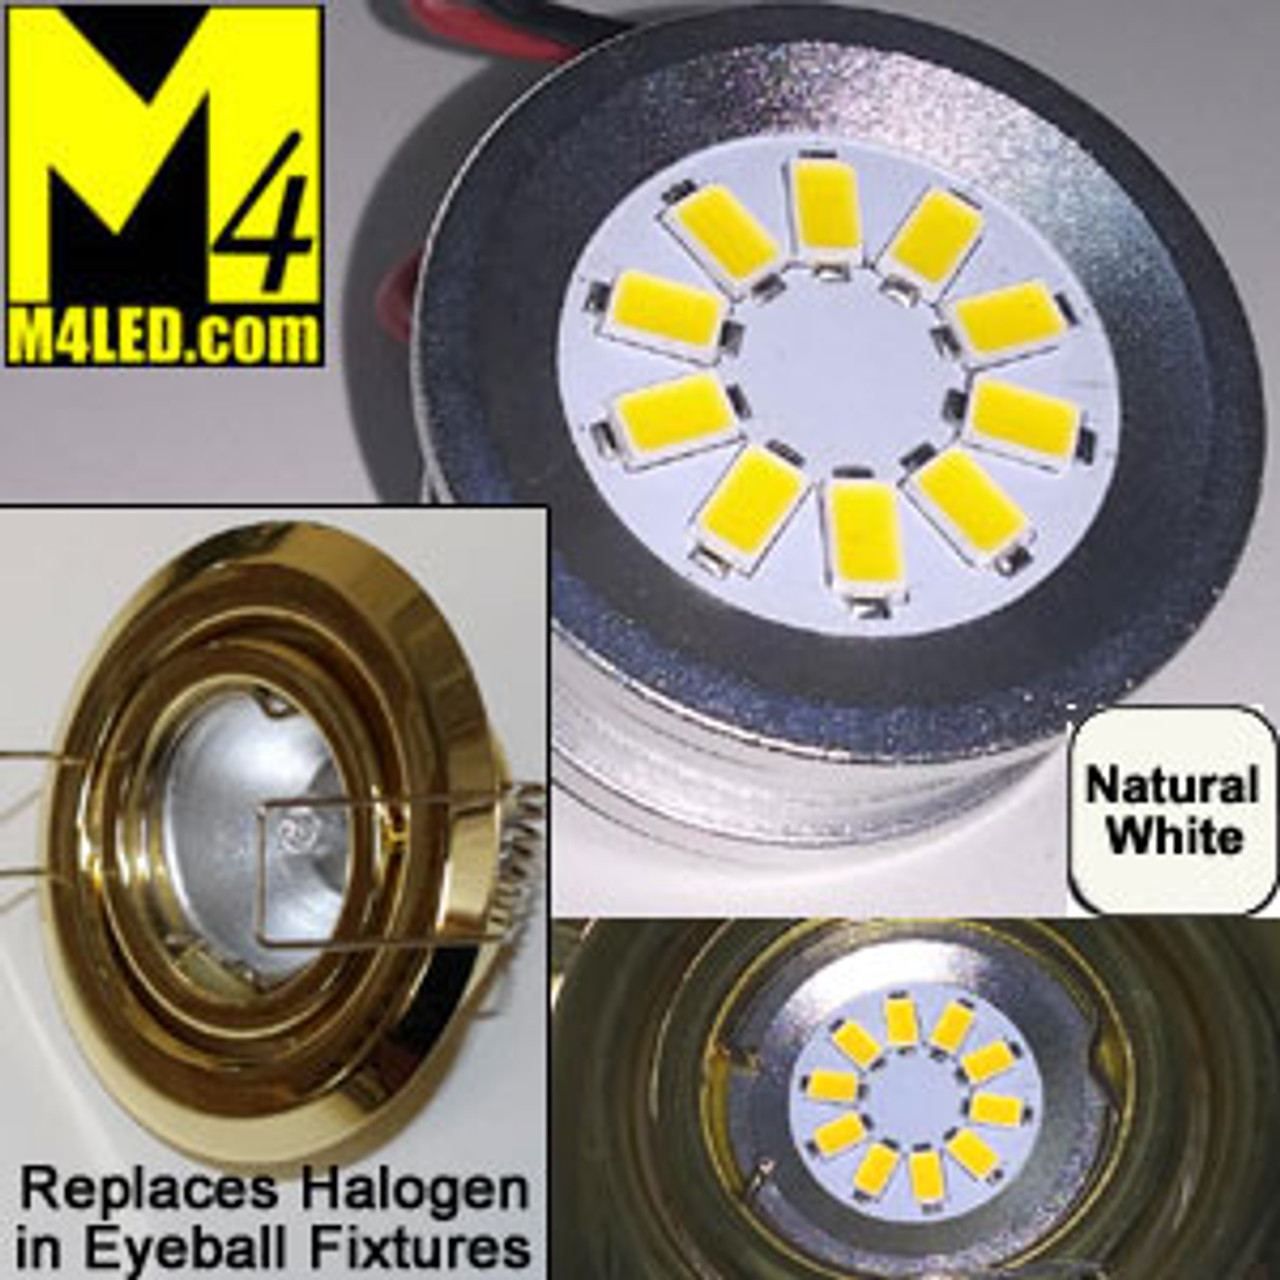 EYEBALL-10-5630-NW Natural White LED Retrofit for Halogen Eyeball Fixtures